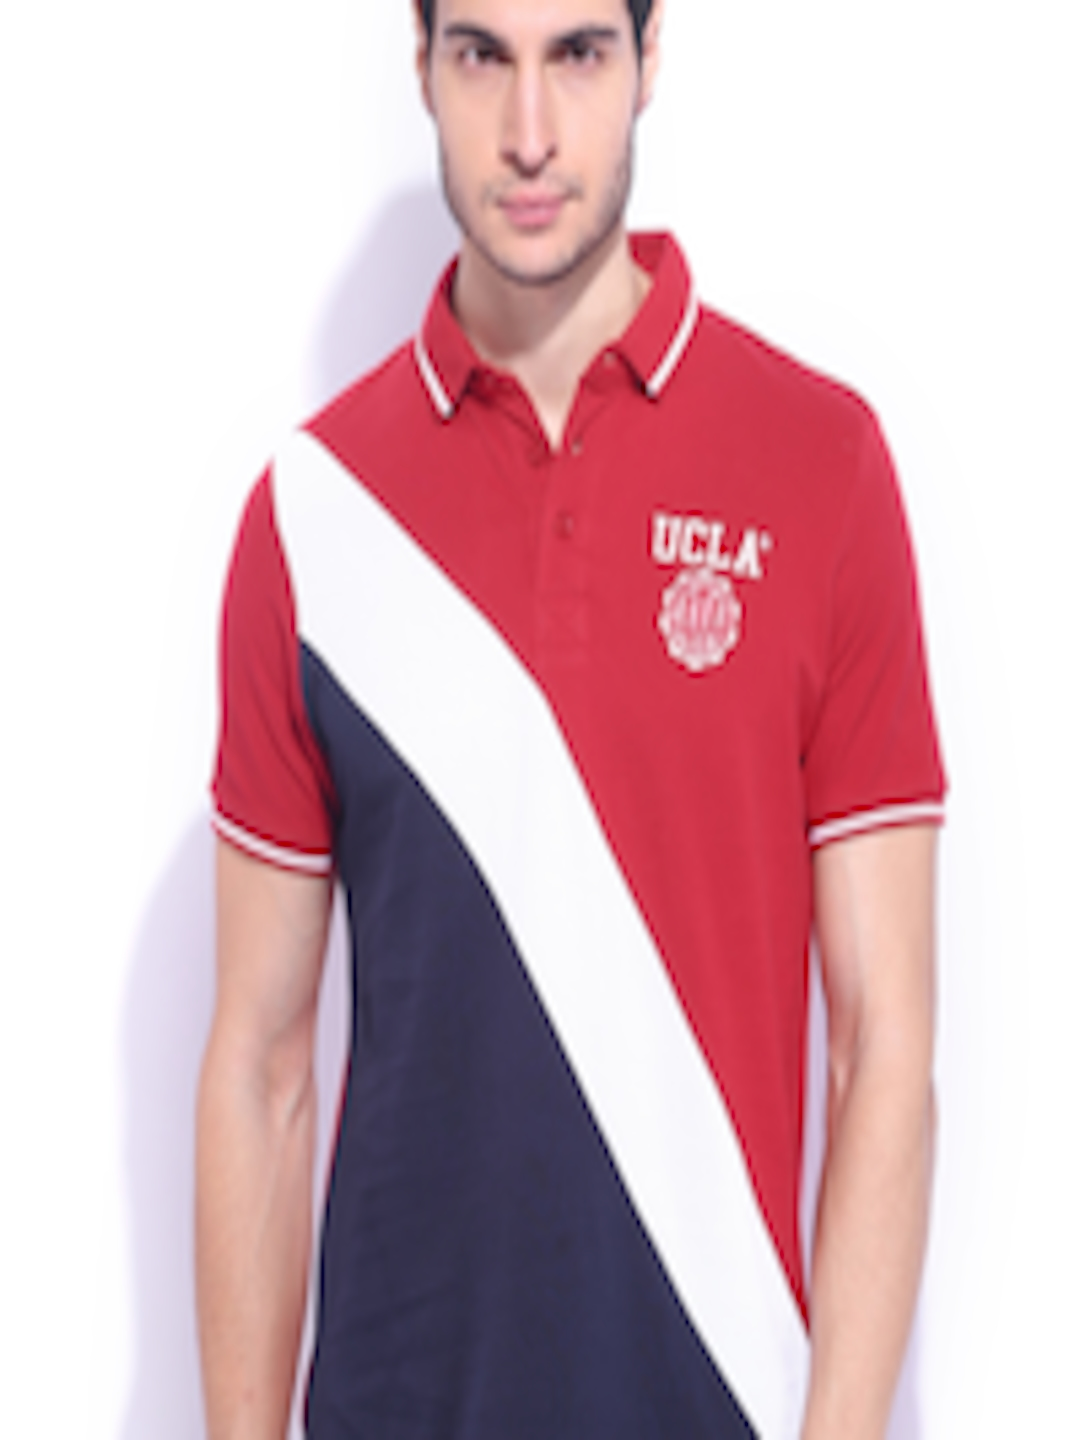 d0fdf16e3 Buy UCLA Red & White Polo T Shirt - Tshirts for Men 1011577   Myntra